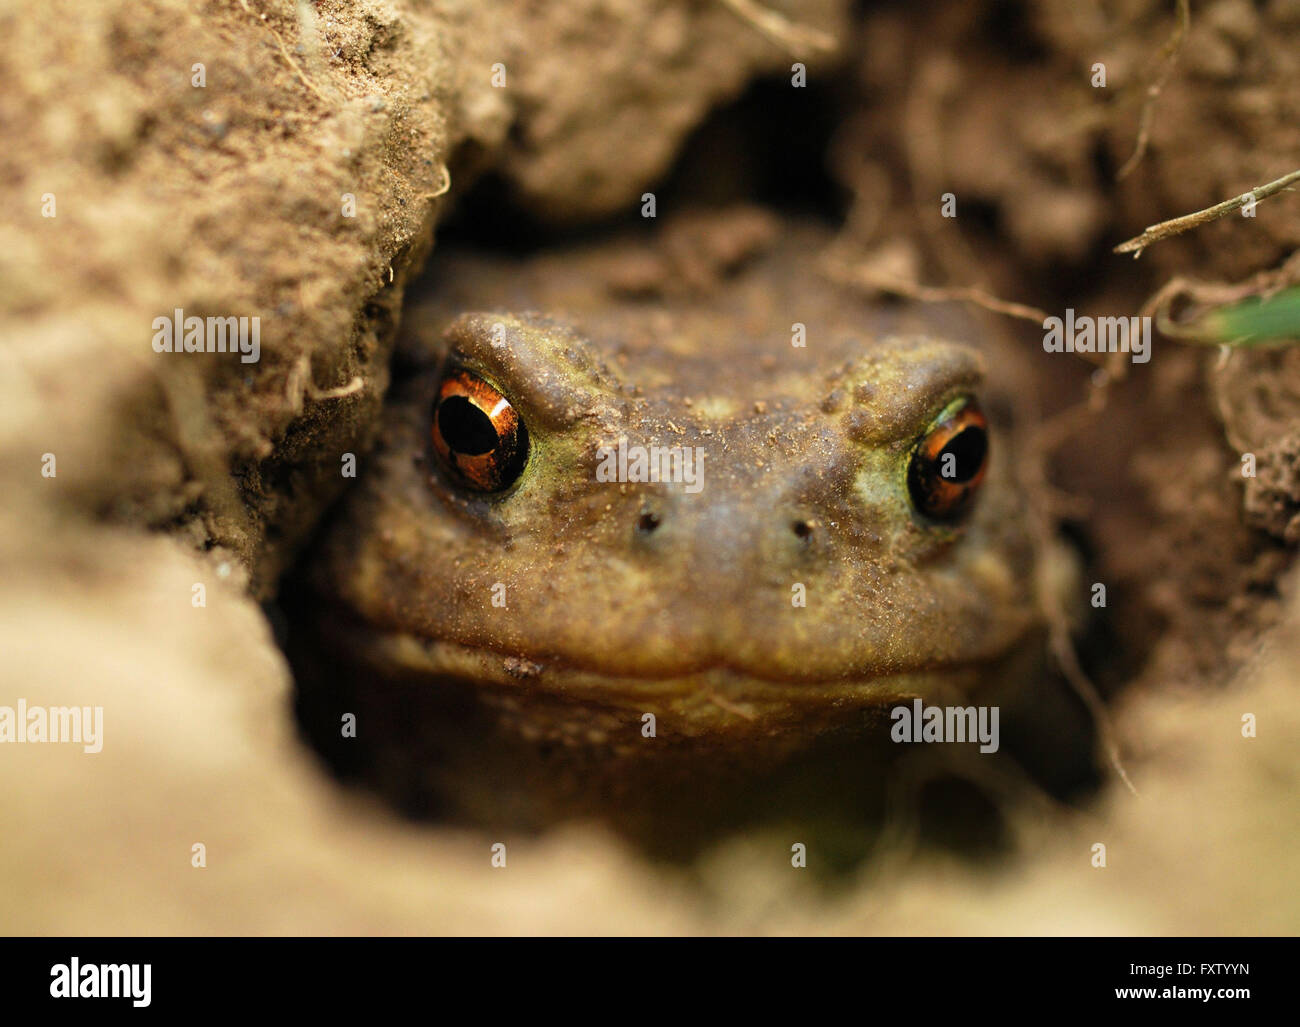 Macro photography of a toad in a hole watching you intently - Stock Image